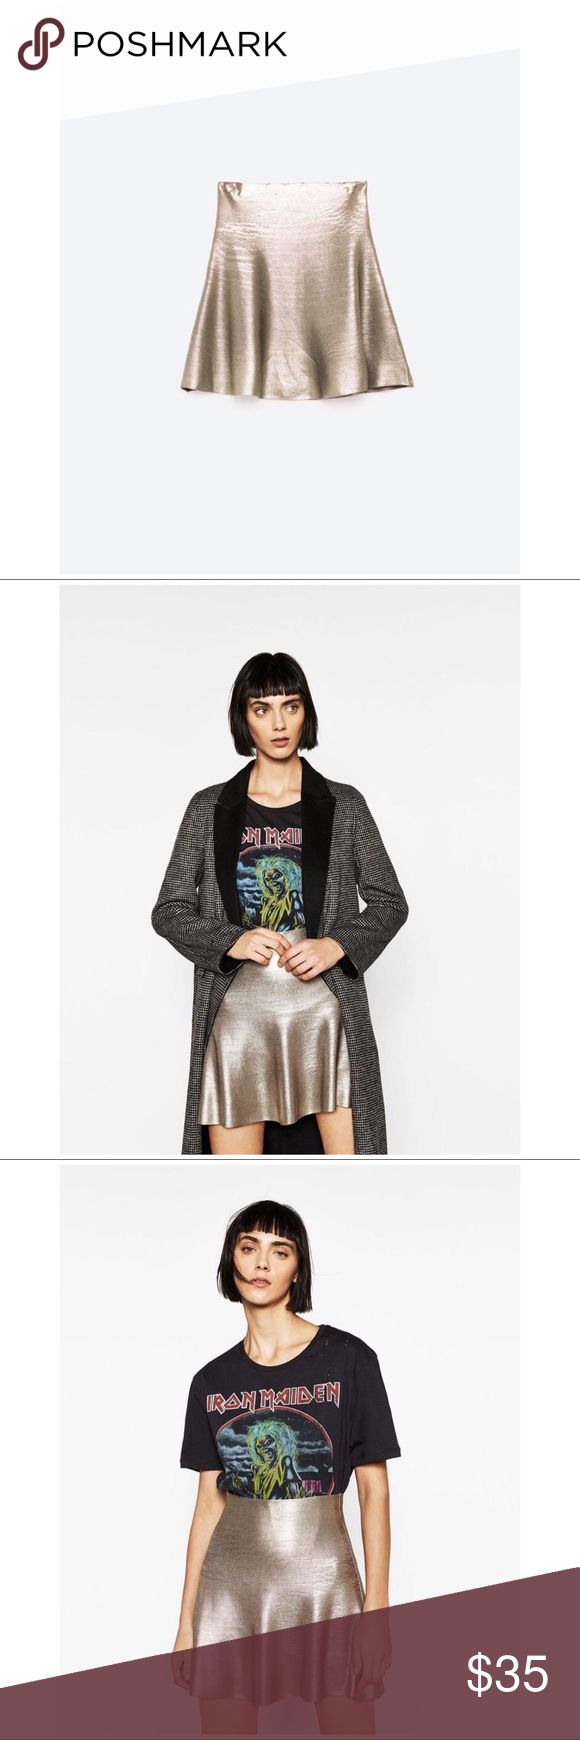 RARE NWT ZARA F/W 16 SHORT A-LINE FOIL SKIRT SZ S This is a brand new Zara skirt.   It's a mini length, in an a-line style. Color is a gold/silver. It's a pull up skirt, there are no zippers or buttons.   From the Winter 2016 Collection.   Original Price: $40  Offers welcome!  #zara #zaraskirt #zarafoilskirt #zaraalineskirt #zarashortskirt #zaraminiskirt #zarashortalinefoilskirt #foilskirt #alineskirt #miniskirt #metallic #metallicskirt #alinefoilskirt #shortskirt #sparkly #gold…